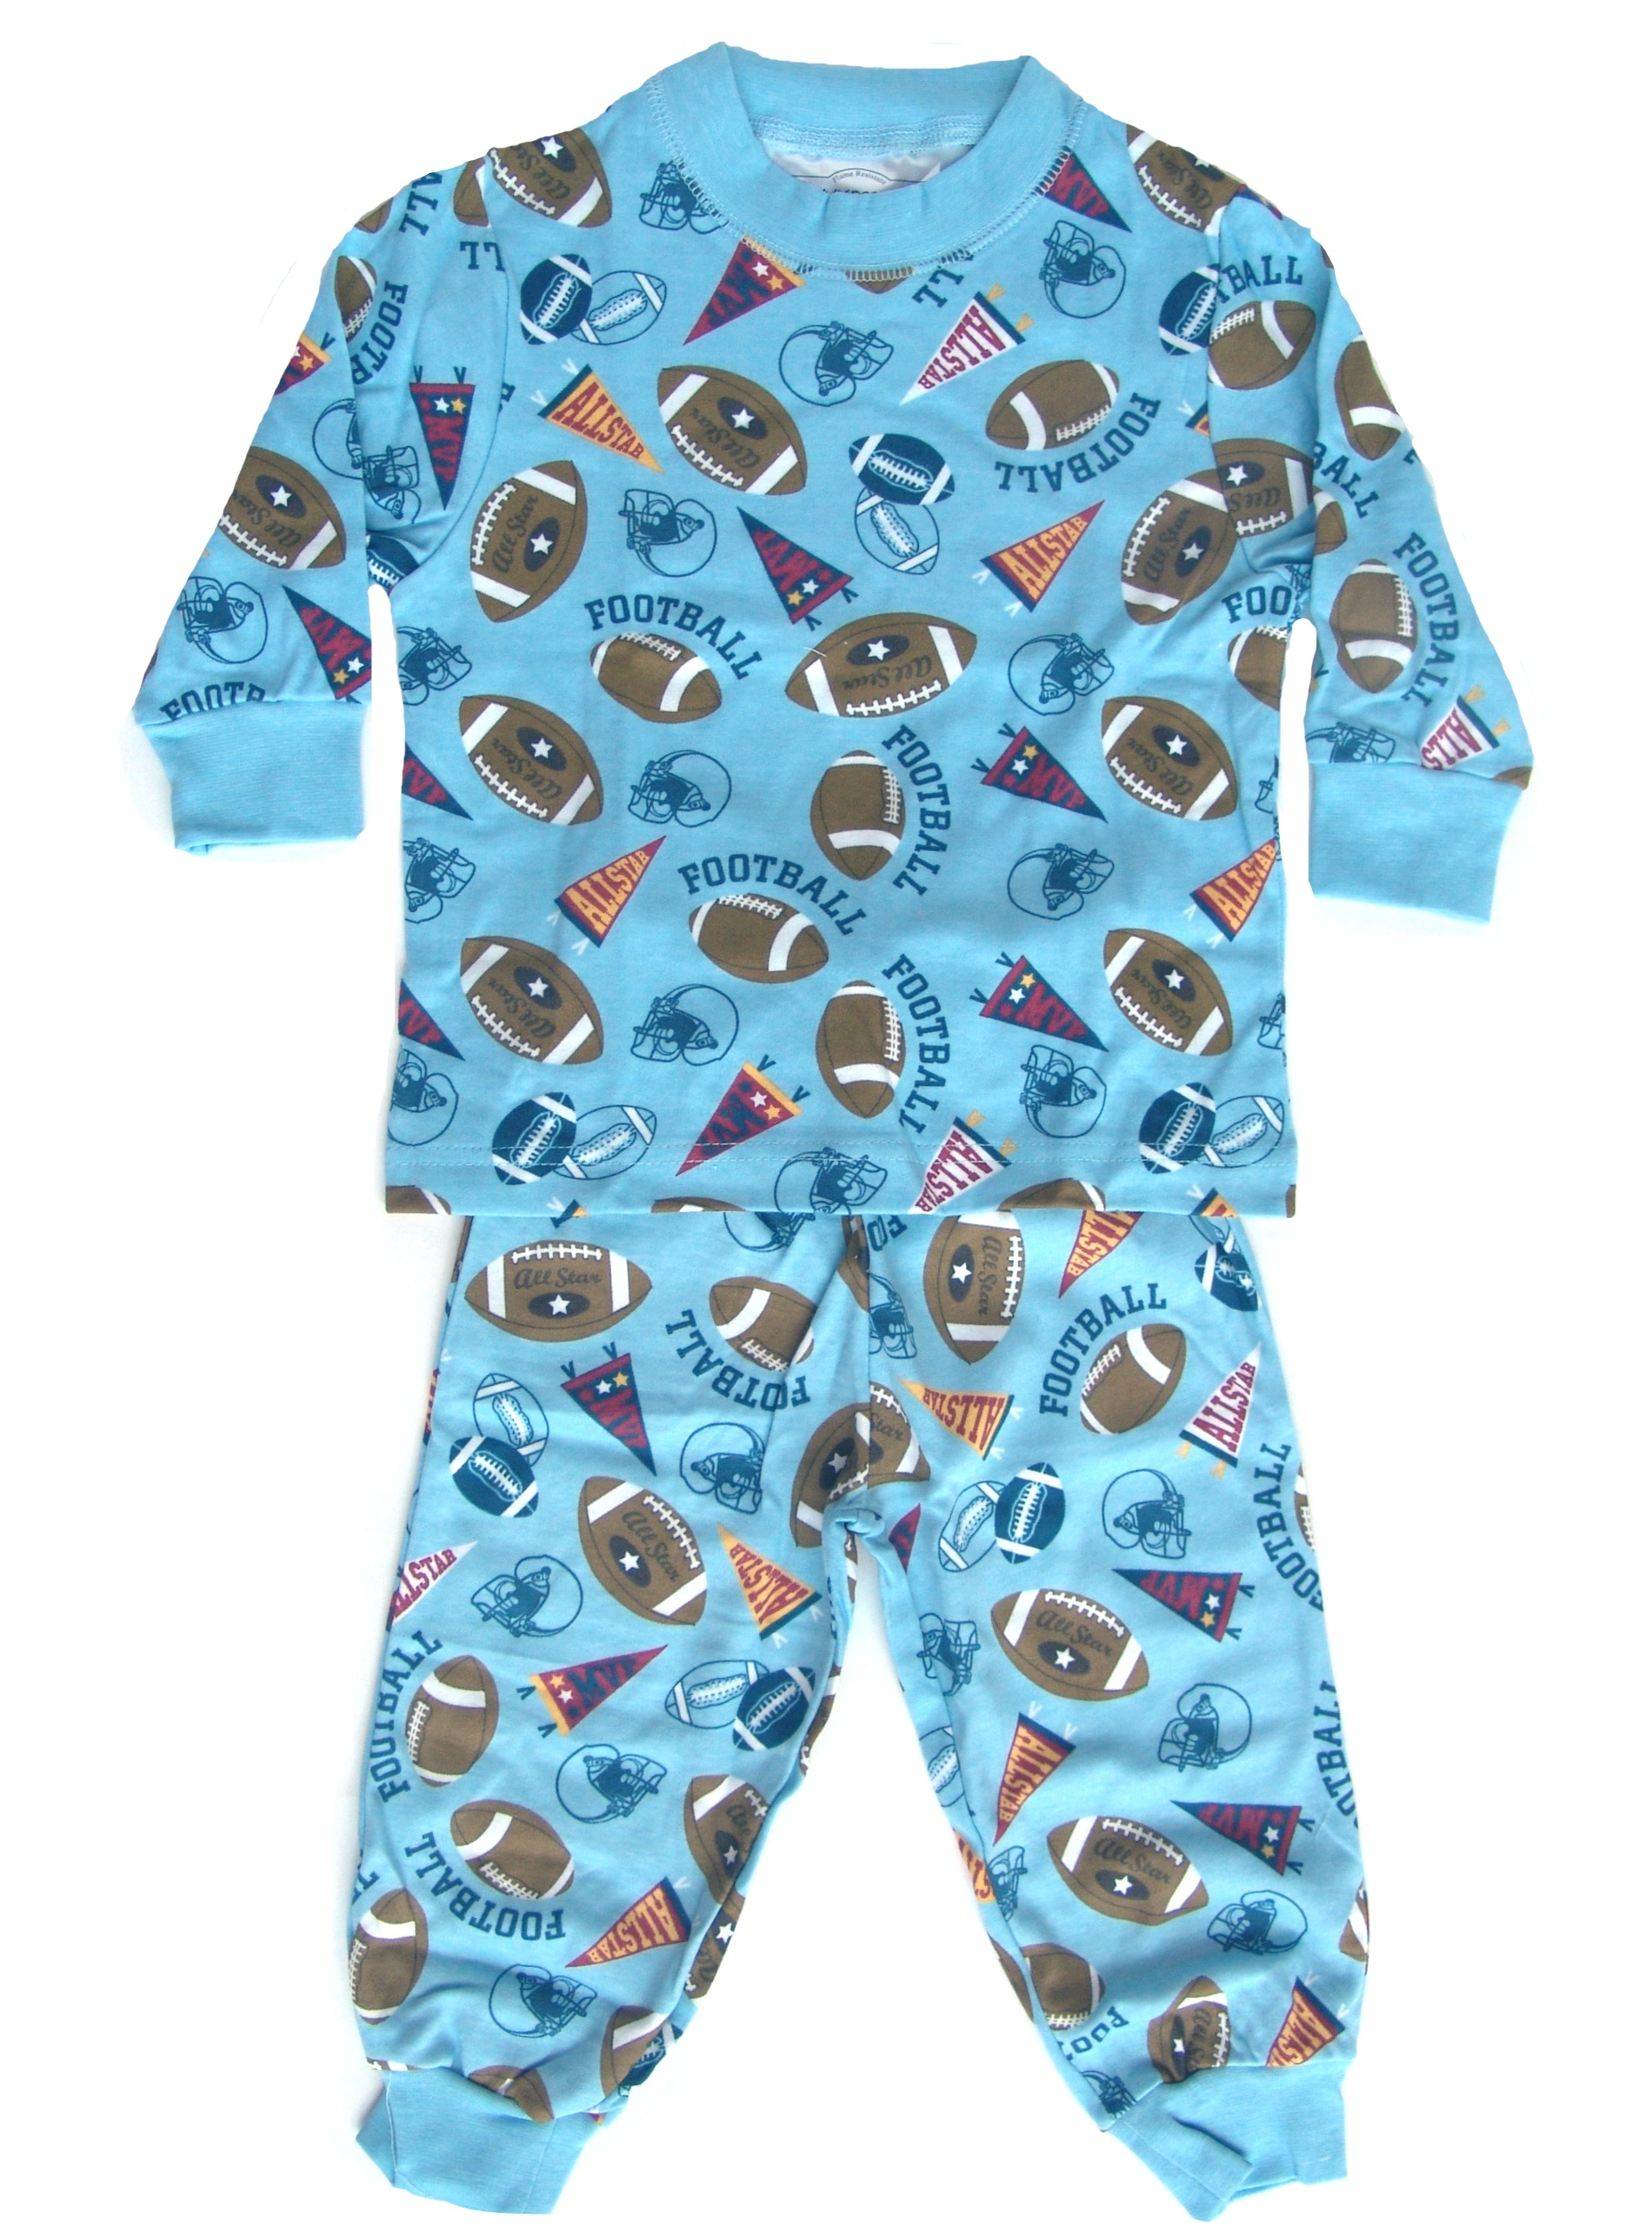 Pajamas clipart. New gallery digital collection